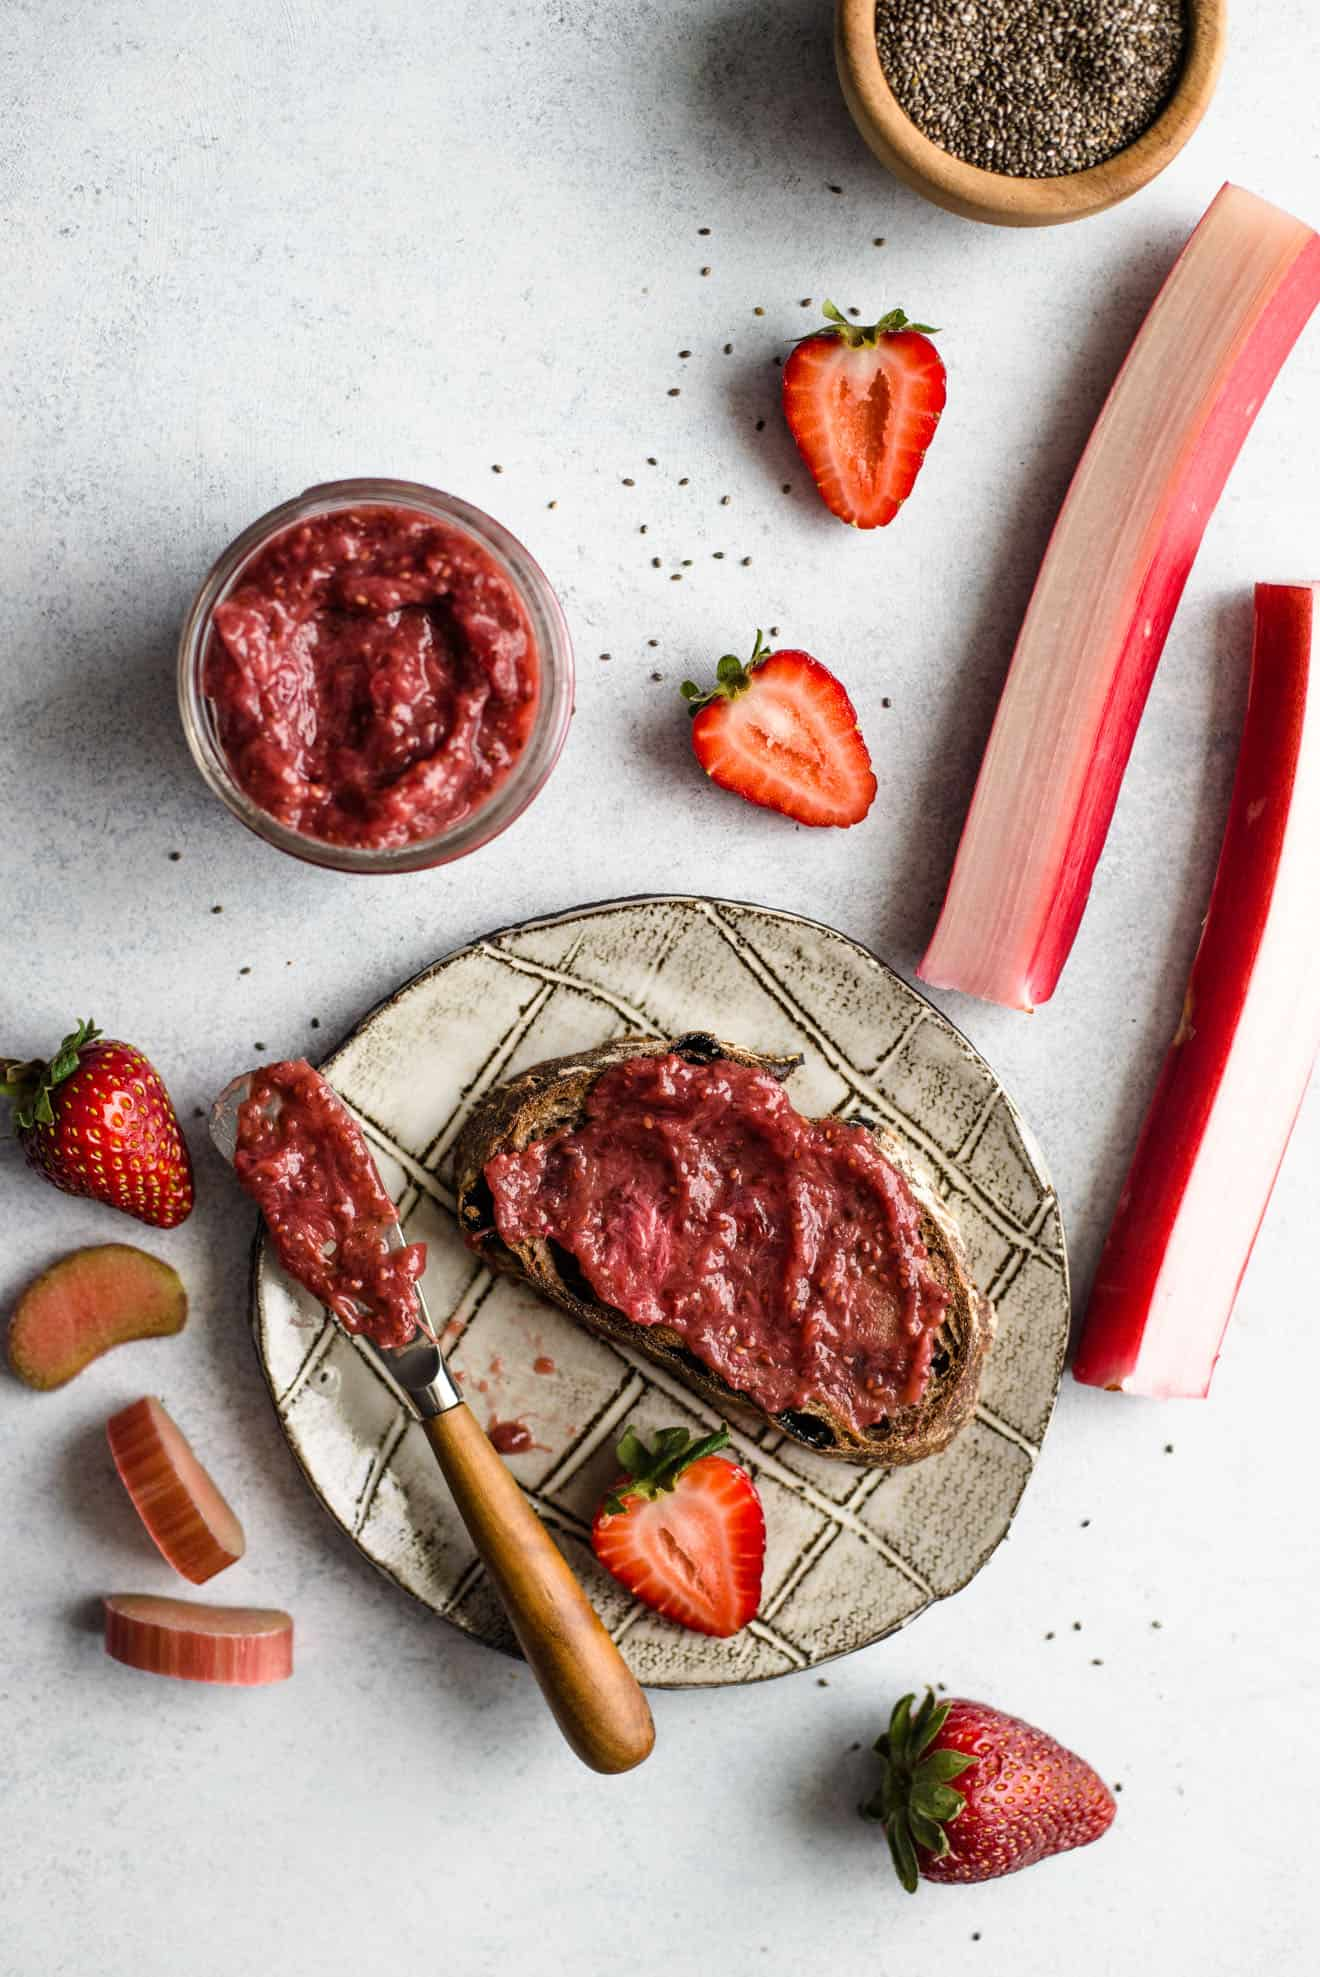 Strawberry Rhubarb Chia Seed Jam - an easy, paleo-friendly jam!